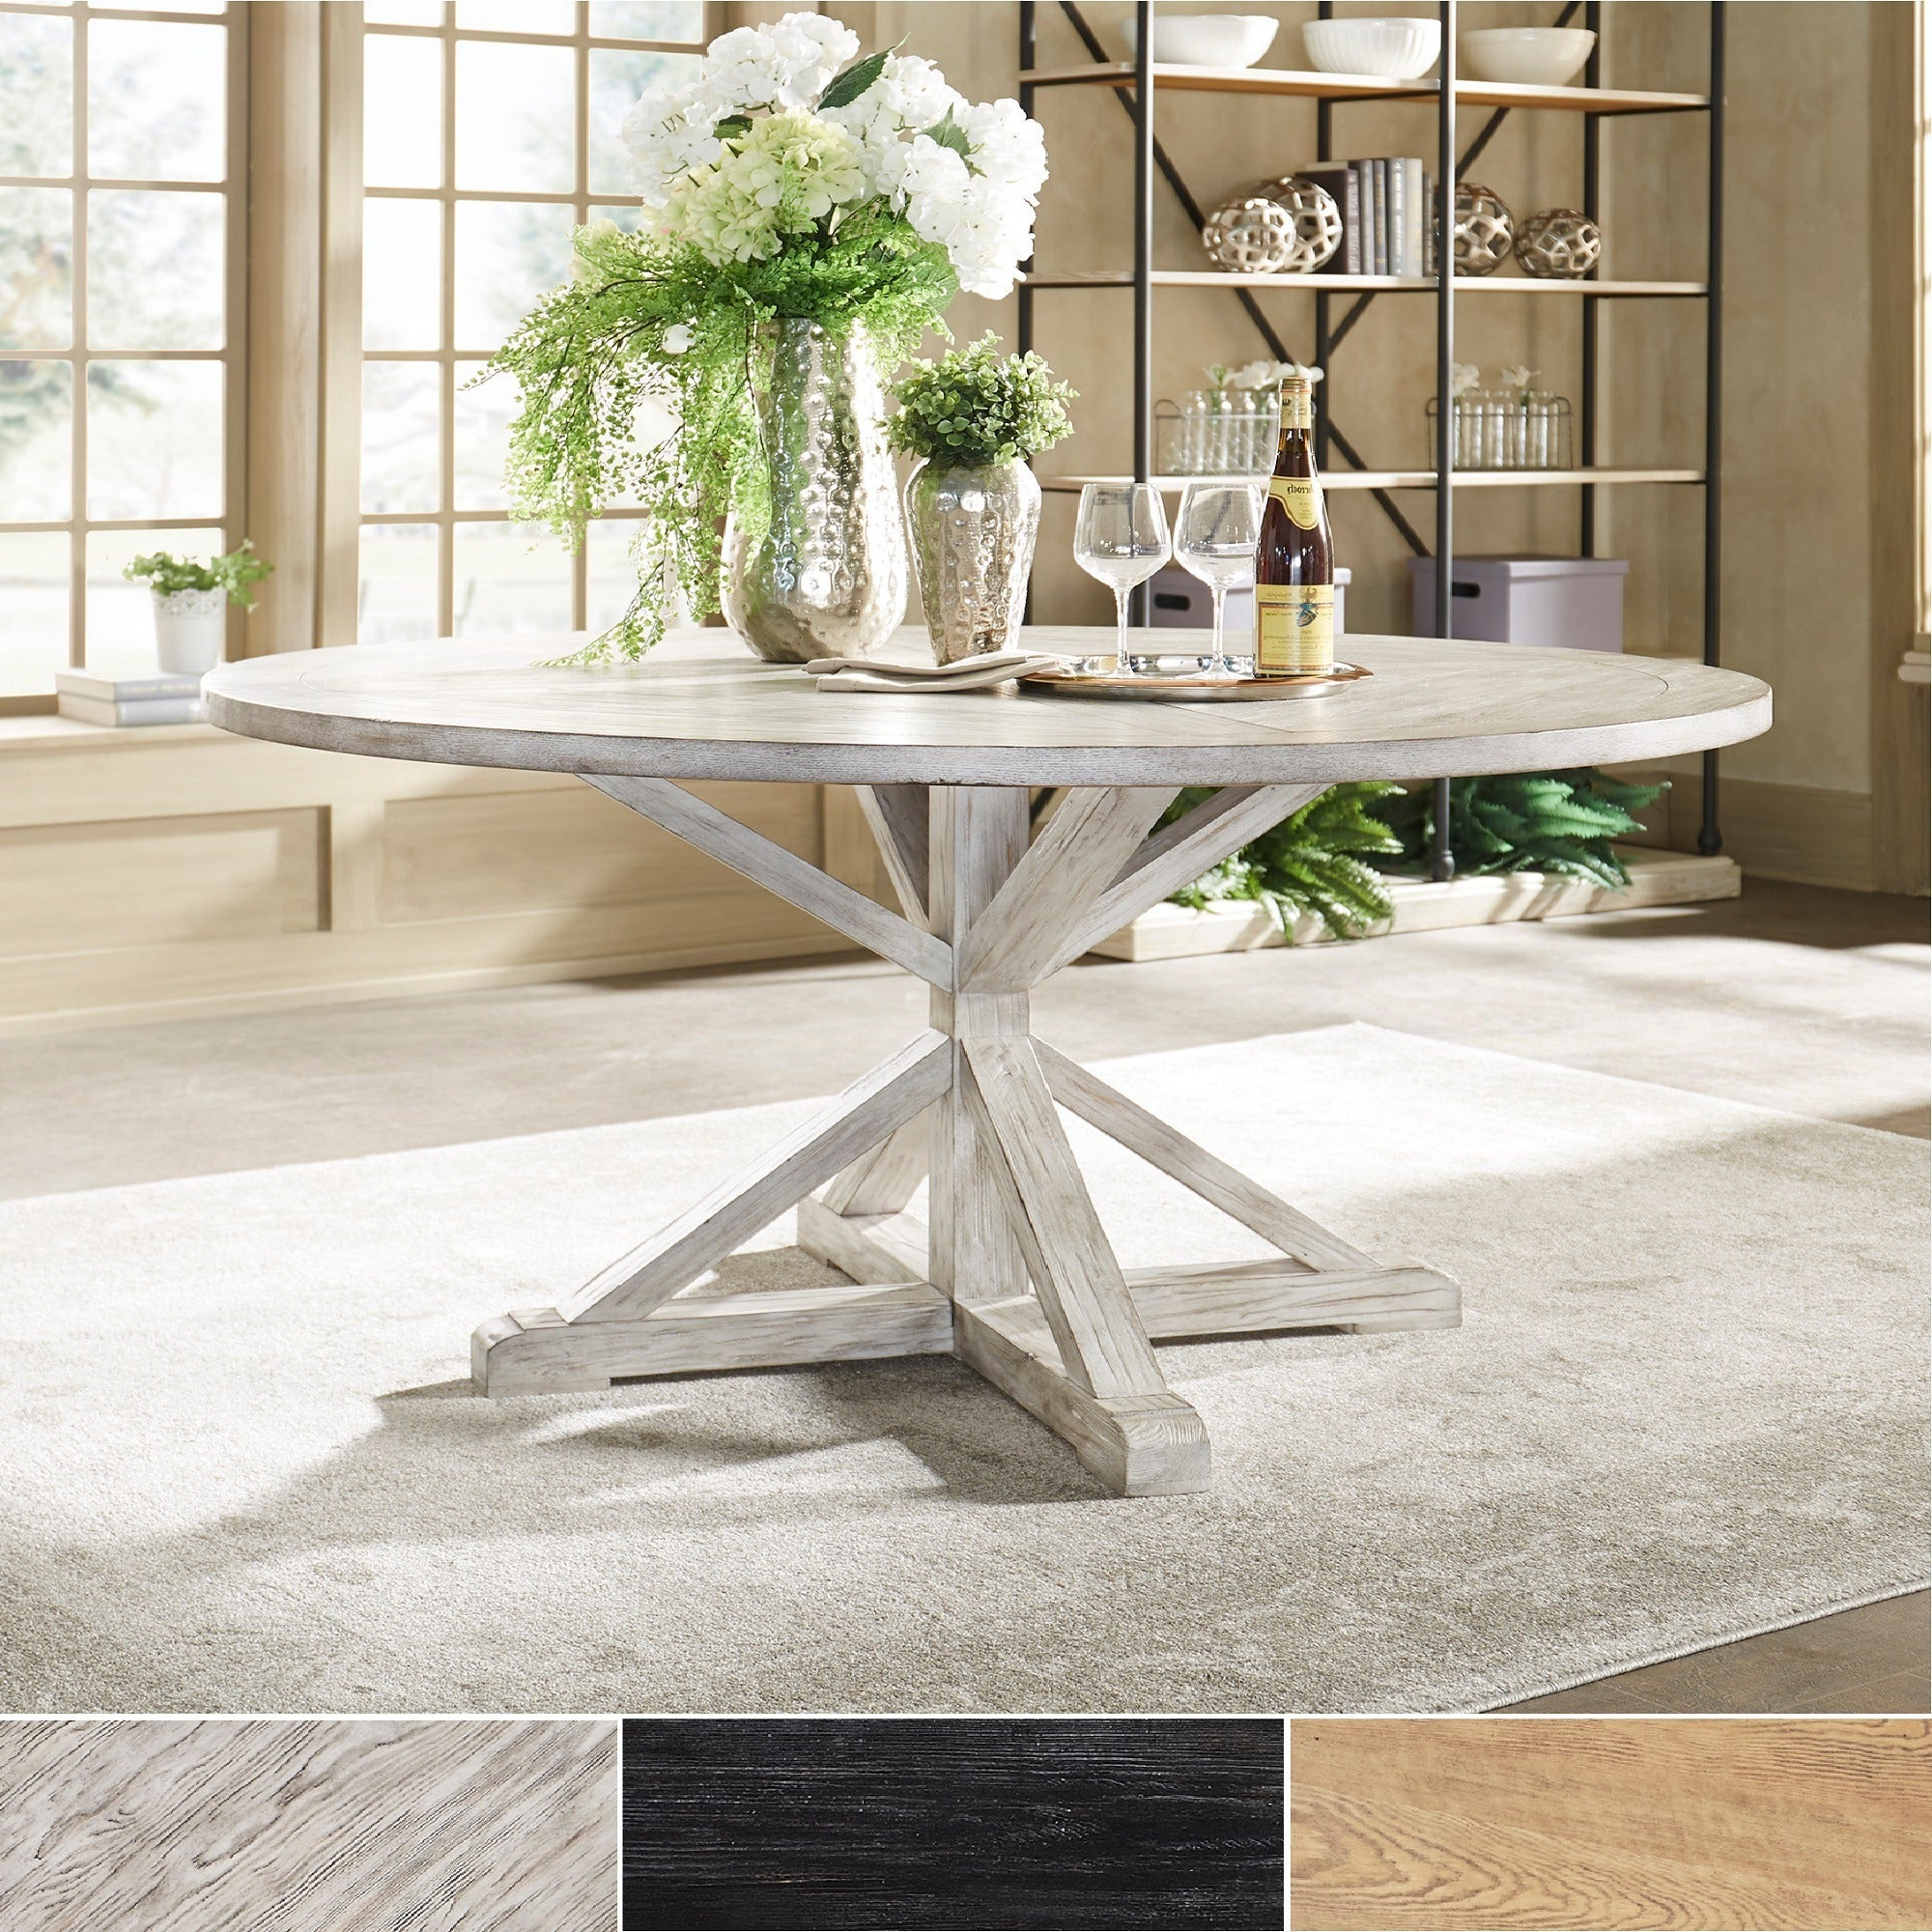 Benchwright Rustic X-Base Round Pine Wood Dining Tableinspire Q Artisan with Popular Rustic Mahogany Benchwright Dining Tables